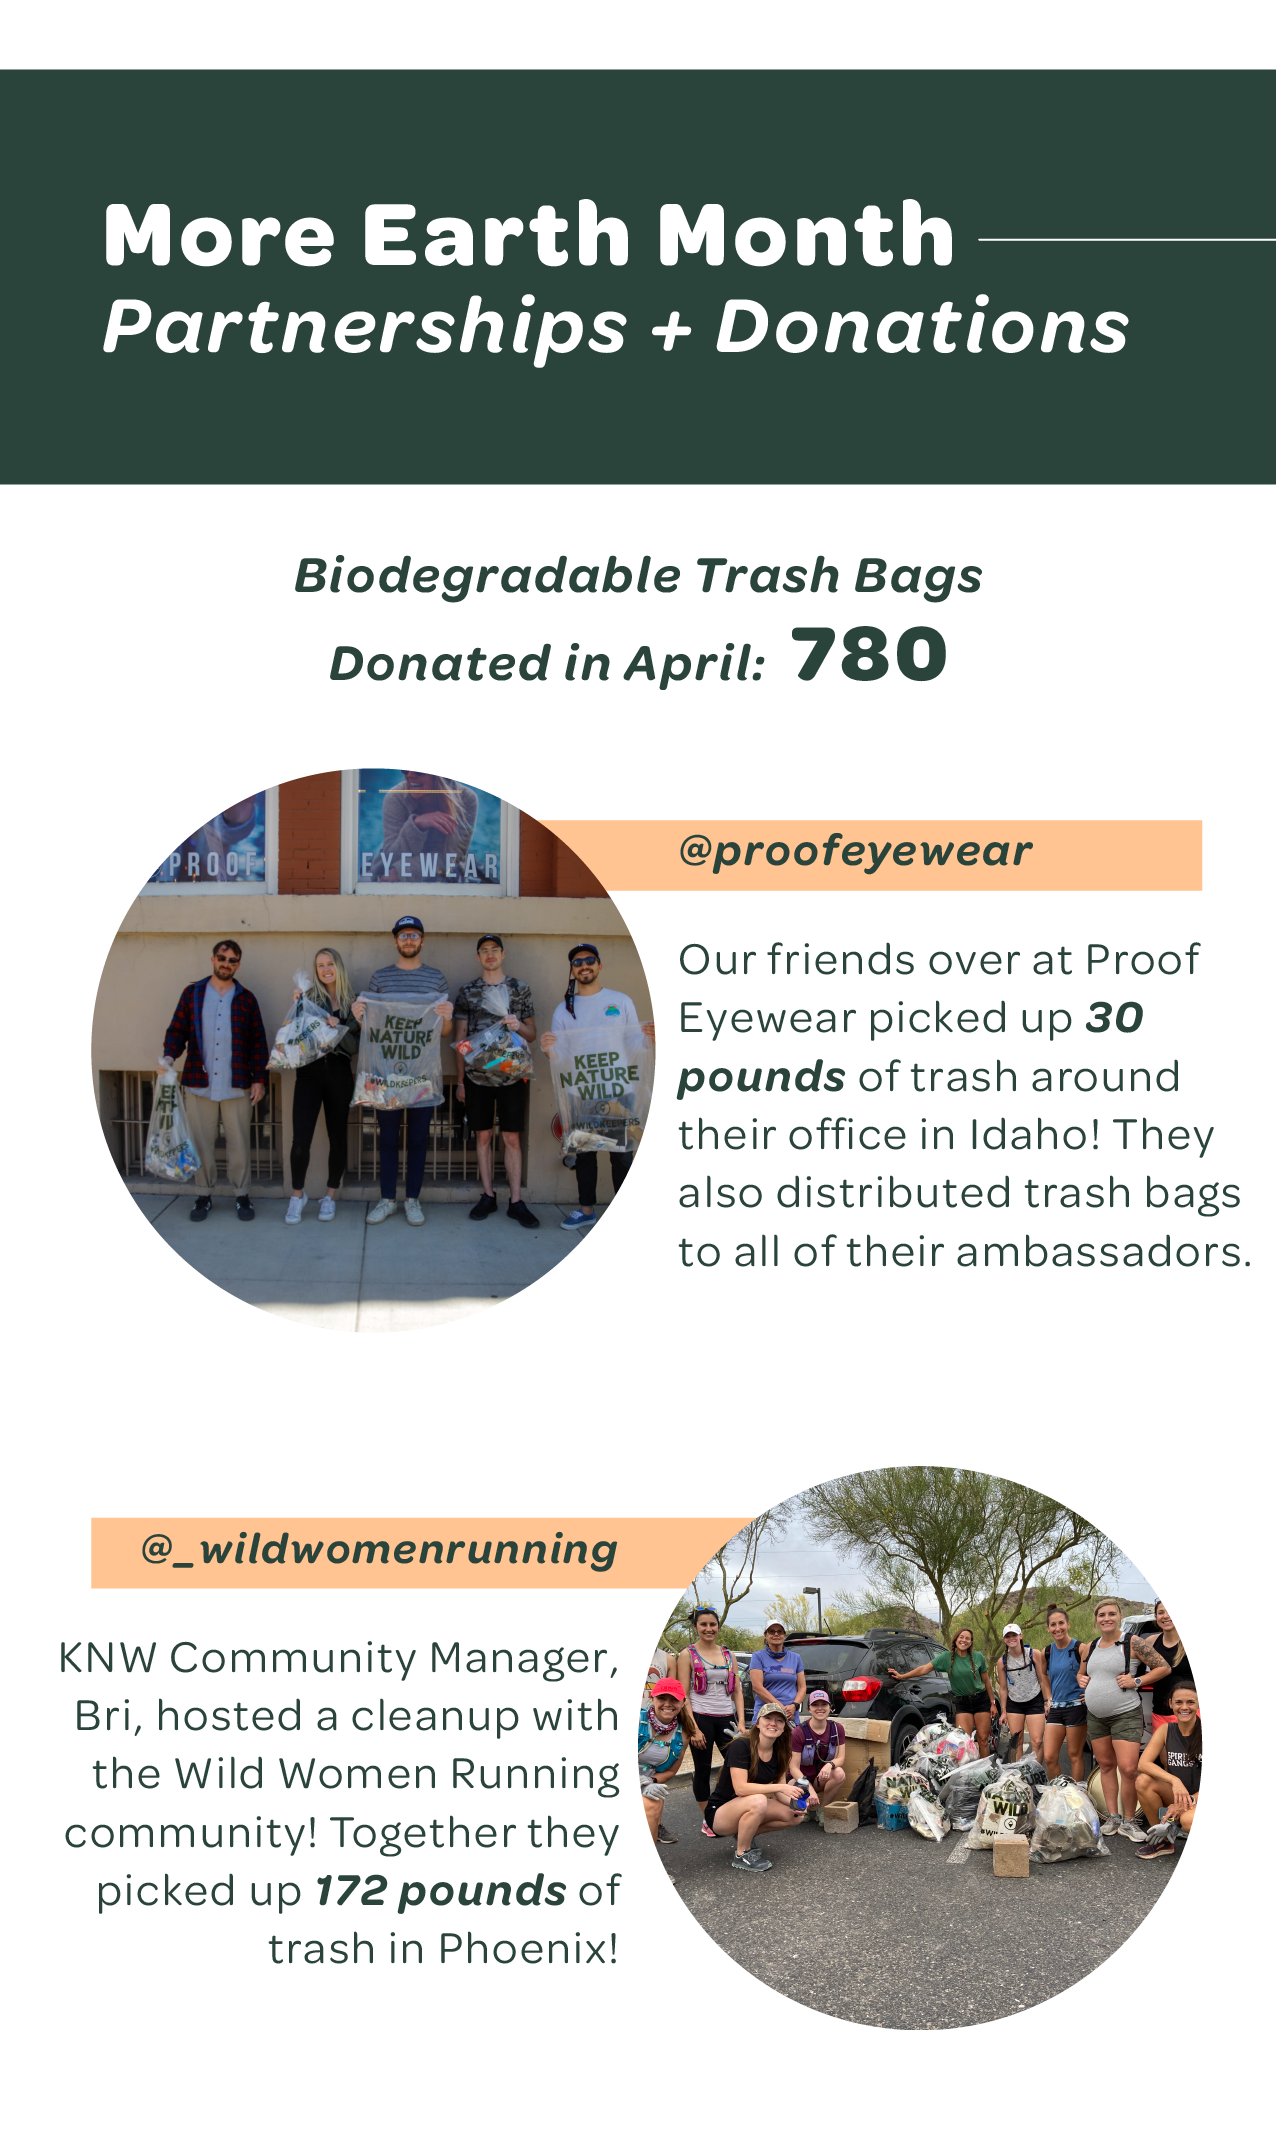 More Earth Month Partnerships + Donations — Biodegradable Trash Bags donated in April: 780. @proofeyewear. Our friends over at Proof Eyewear picked up 30 pounds of trash around their office in Idaho! They also distributed trash bags to all of their ambassadors. @_wildwomenrunning. KNW Community Manager, Bri, hosted a cleanup with the Wild Women Running community! Together they picked up 172 pounds of trash in Phoenix!